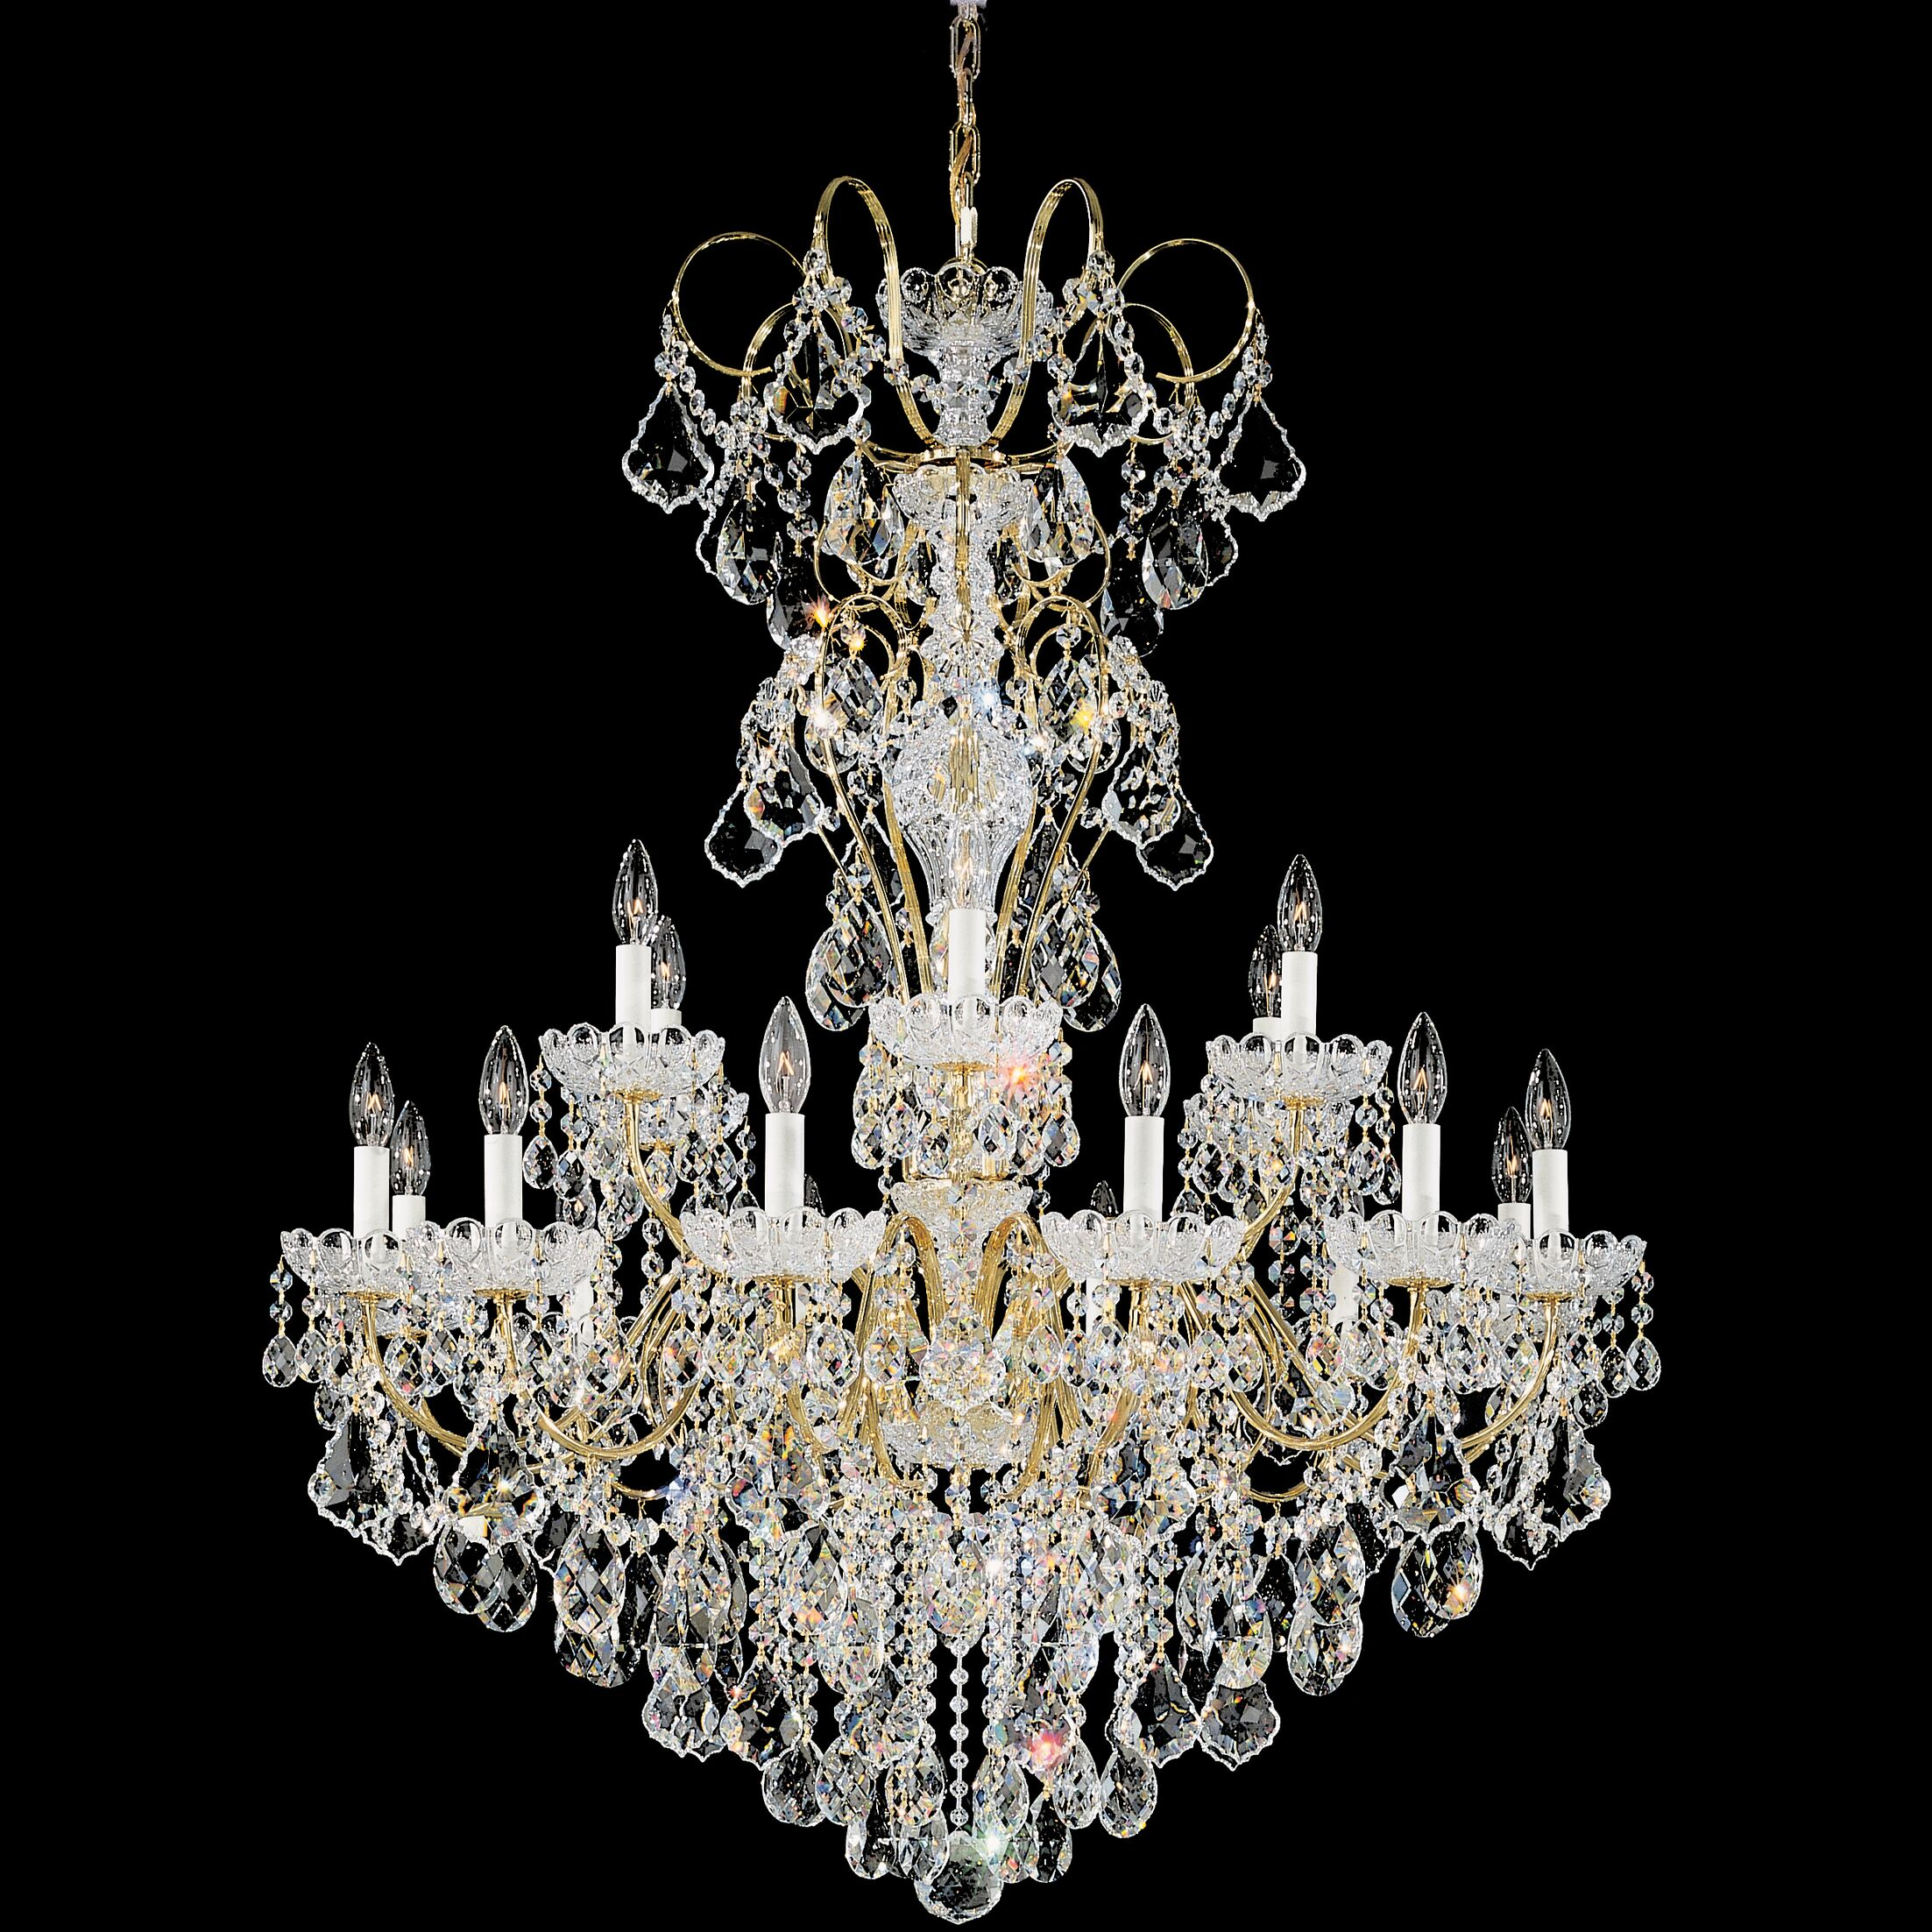 New Orleans 18-Light Chandelier Finish: Aurelia, Crystal Type: Heritage Clear